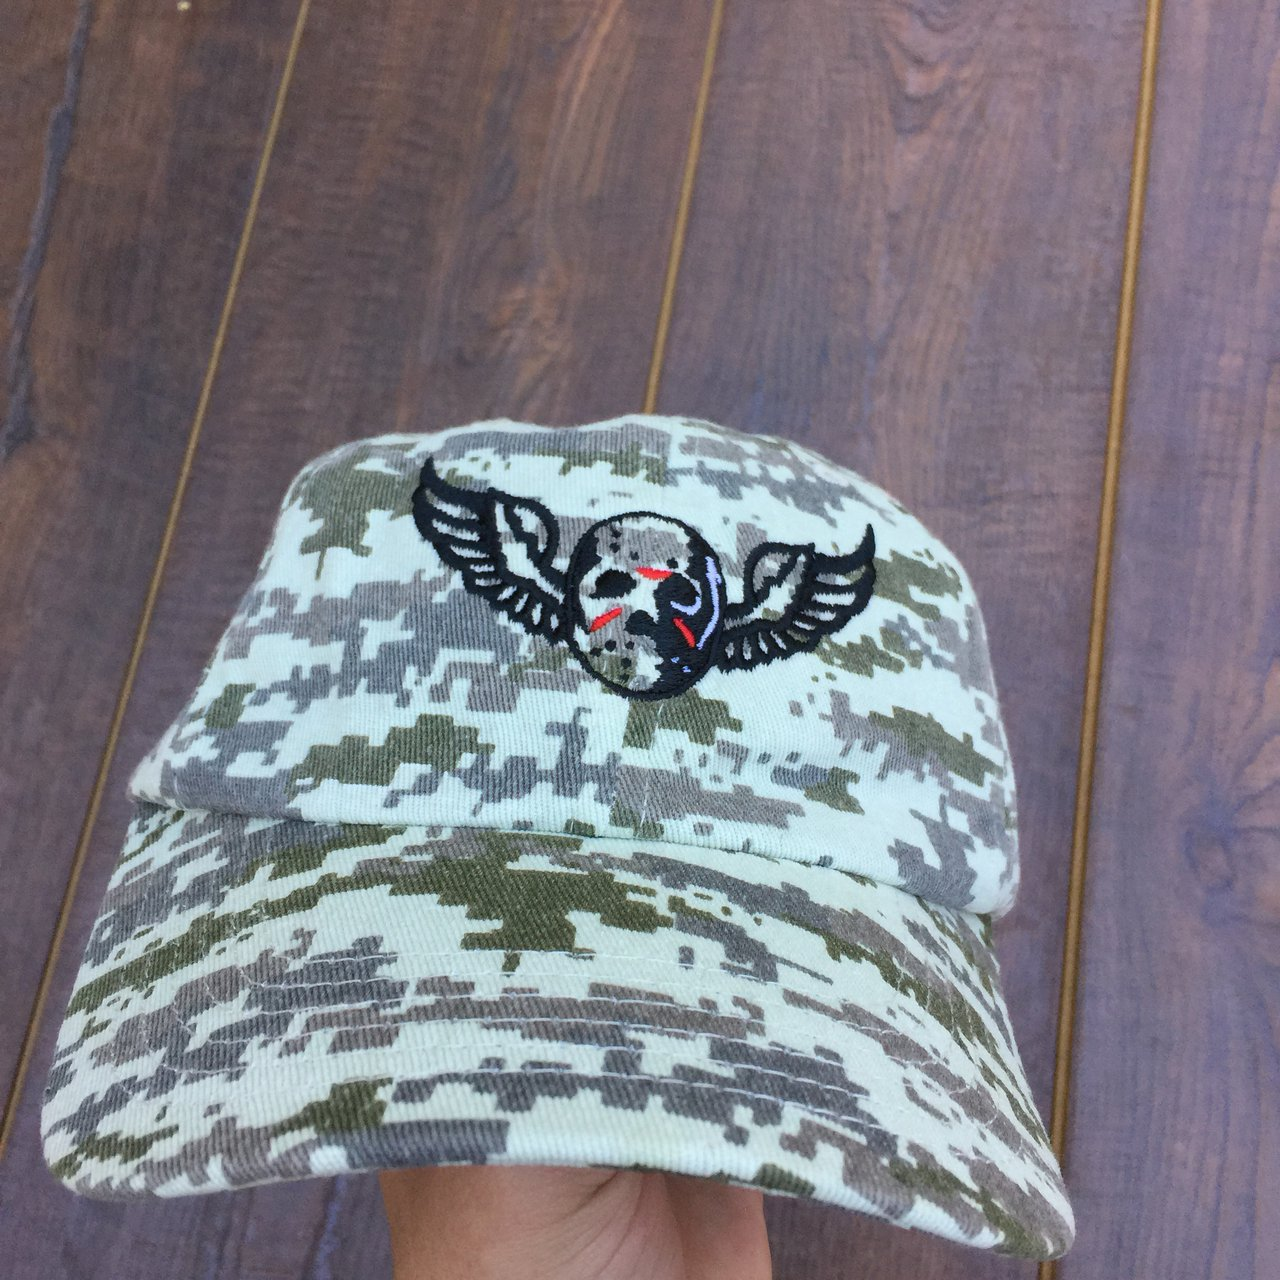 Jason Voorhees dad hat Digital Camo One size fits all No - Depop b3a17479e6a